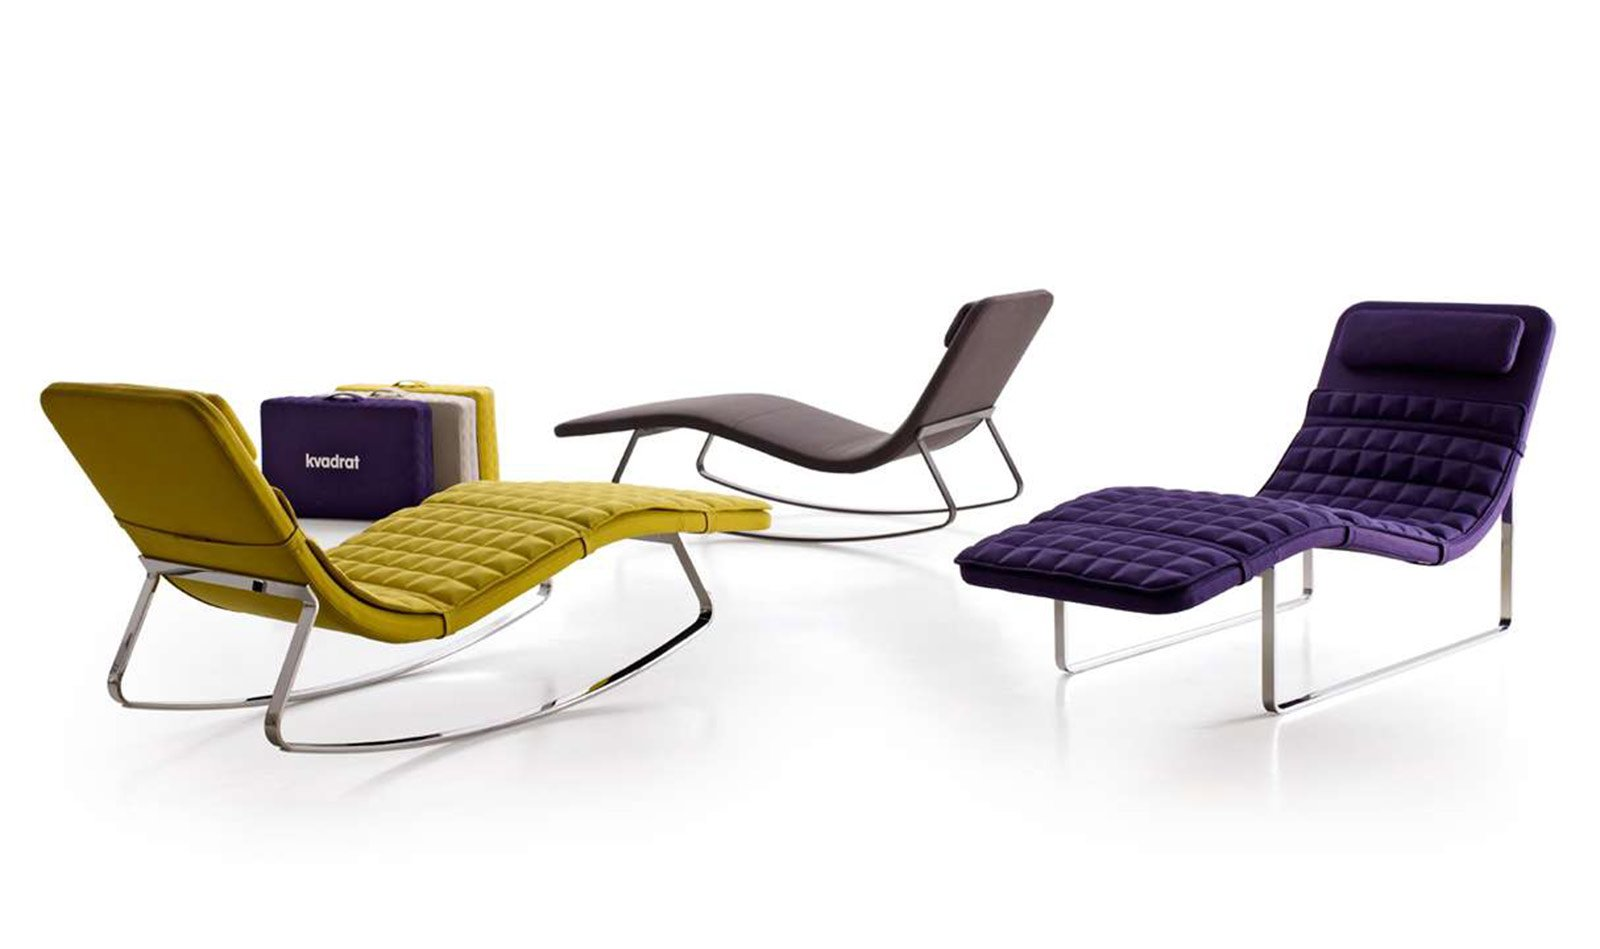 Stunning Chaise Longue Prezzi Bassi Ideas - Design and Ideas ...